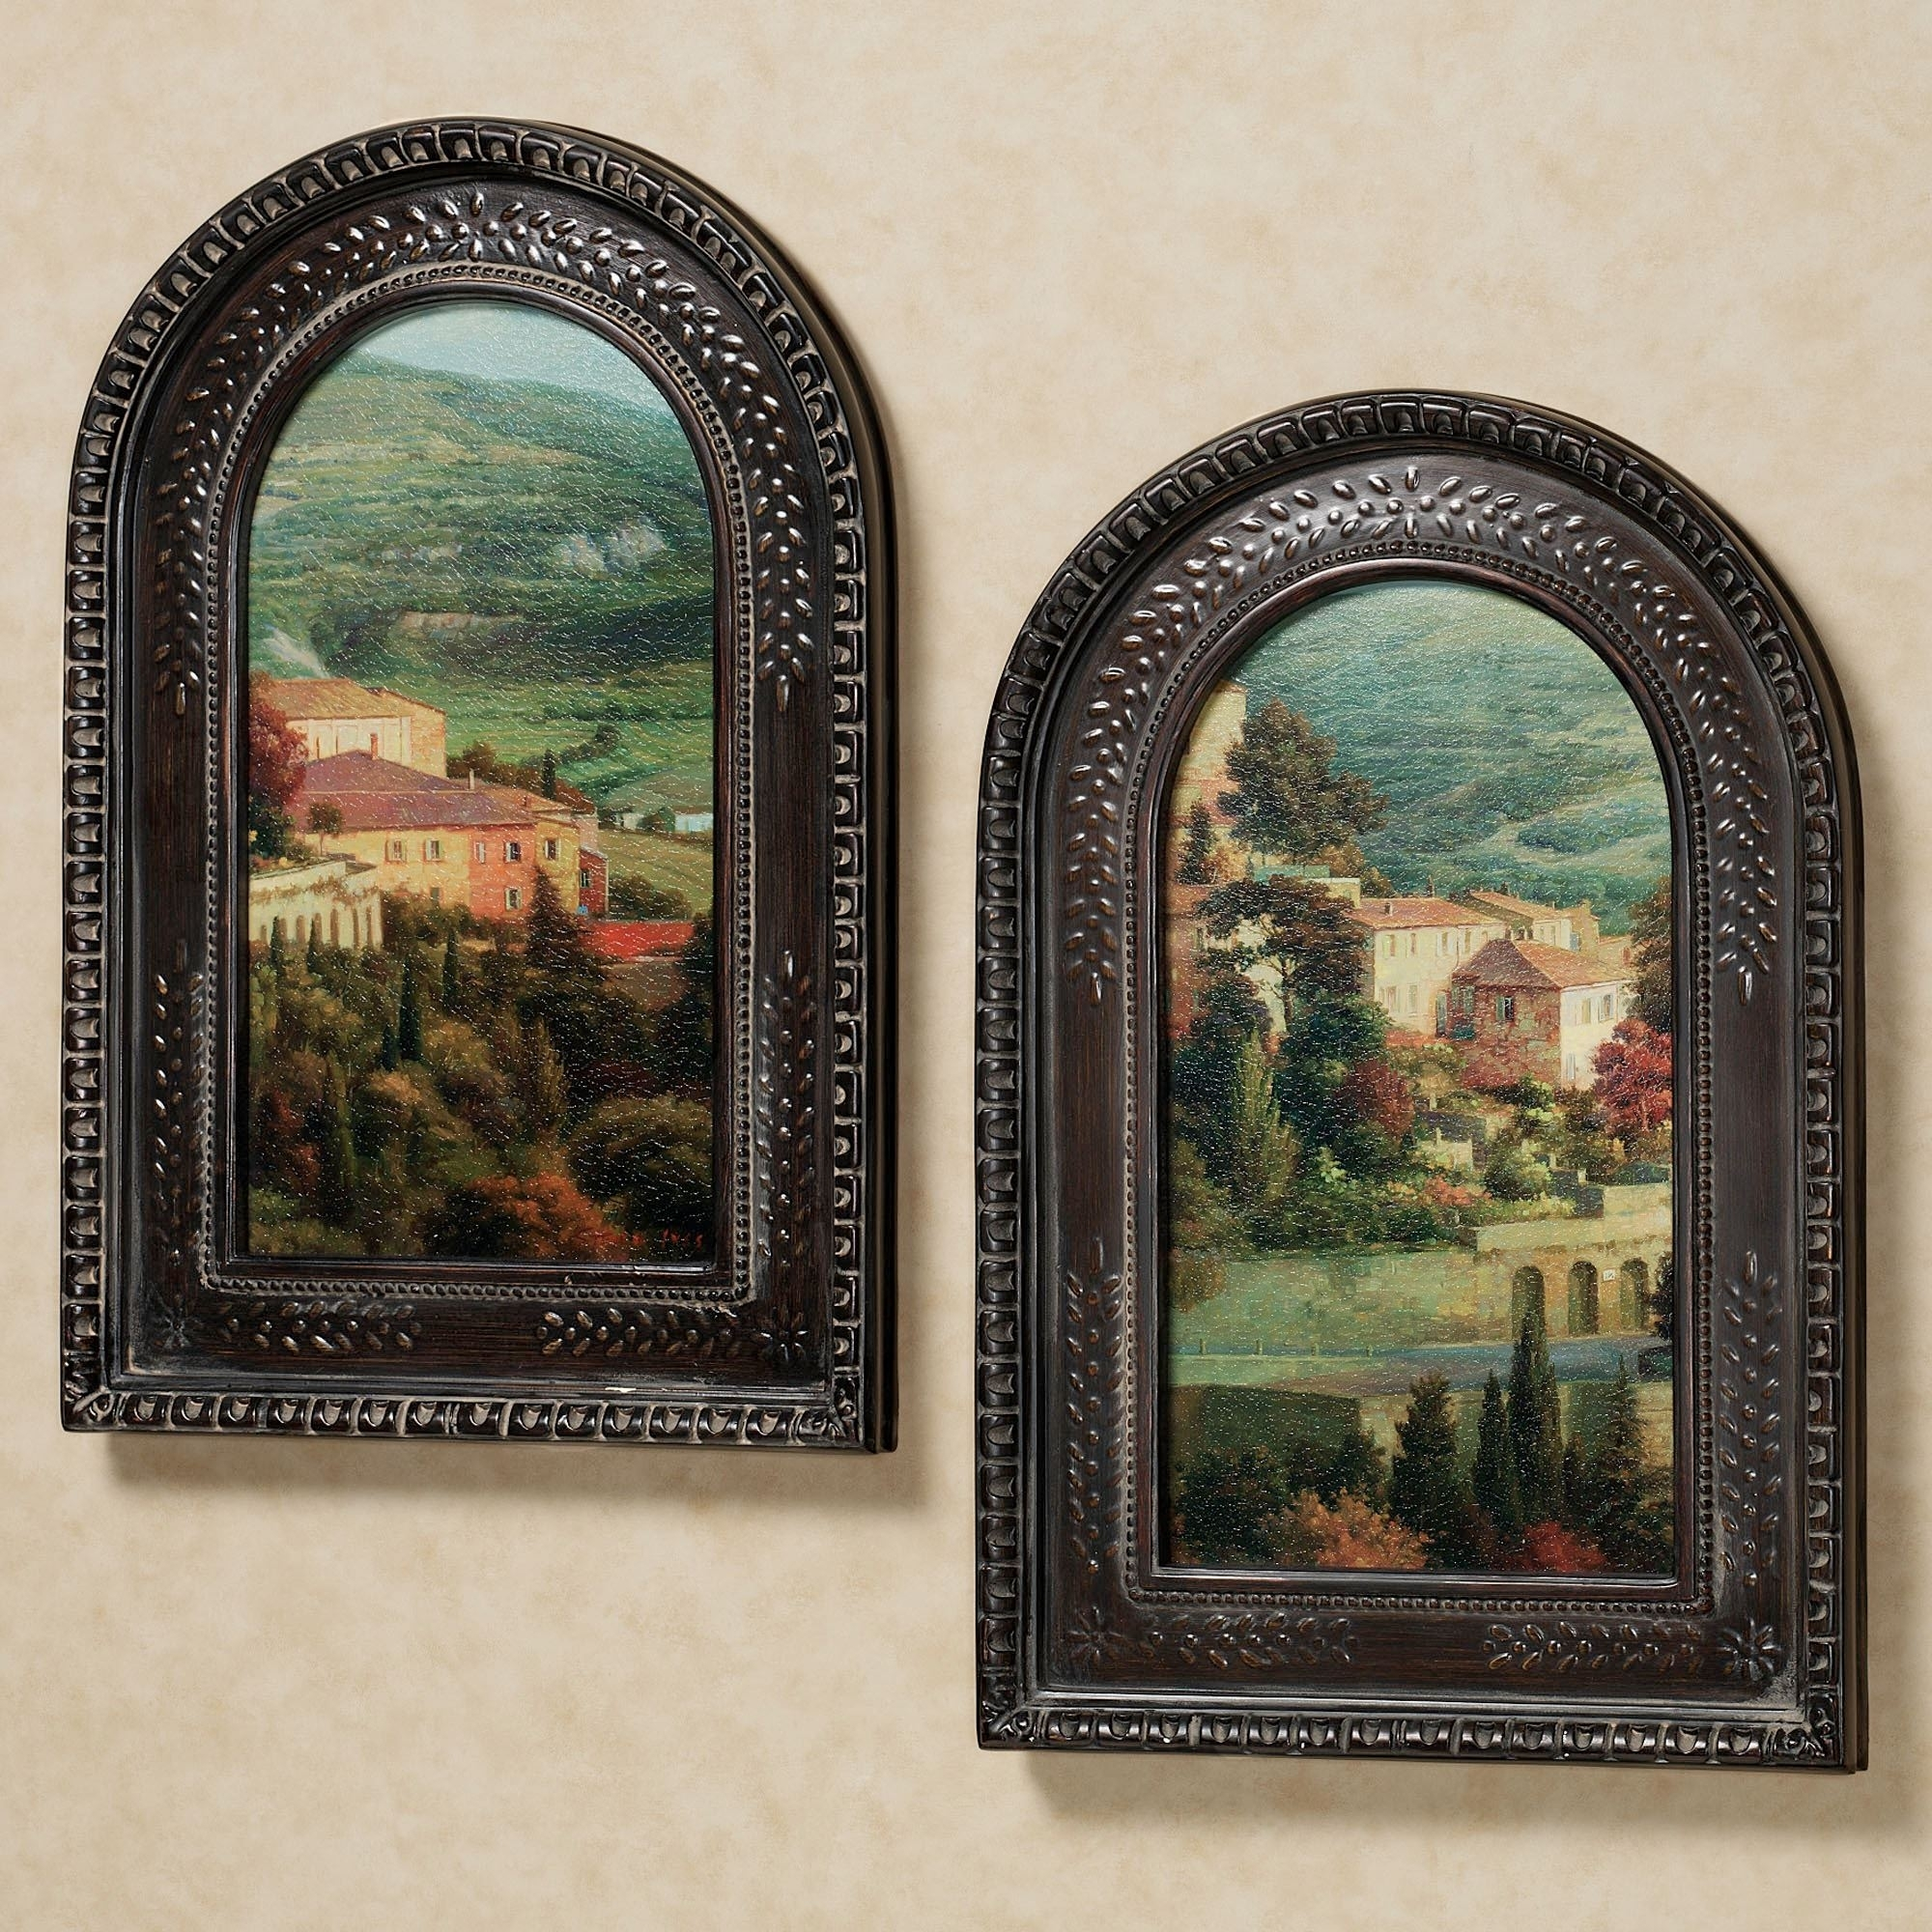 Framed Art Prints | Touch Of Class Pertaining To Most Current Framed Art Prints Sets (View 5 of 15)